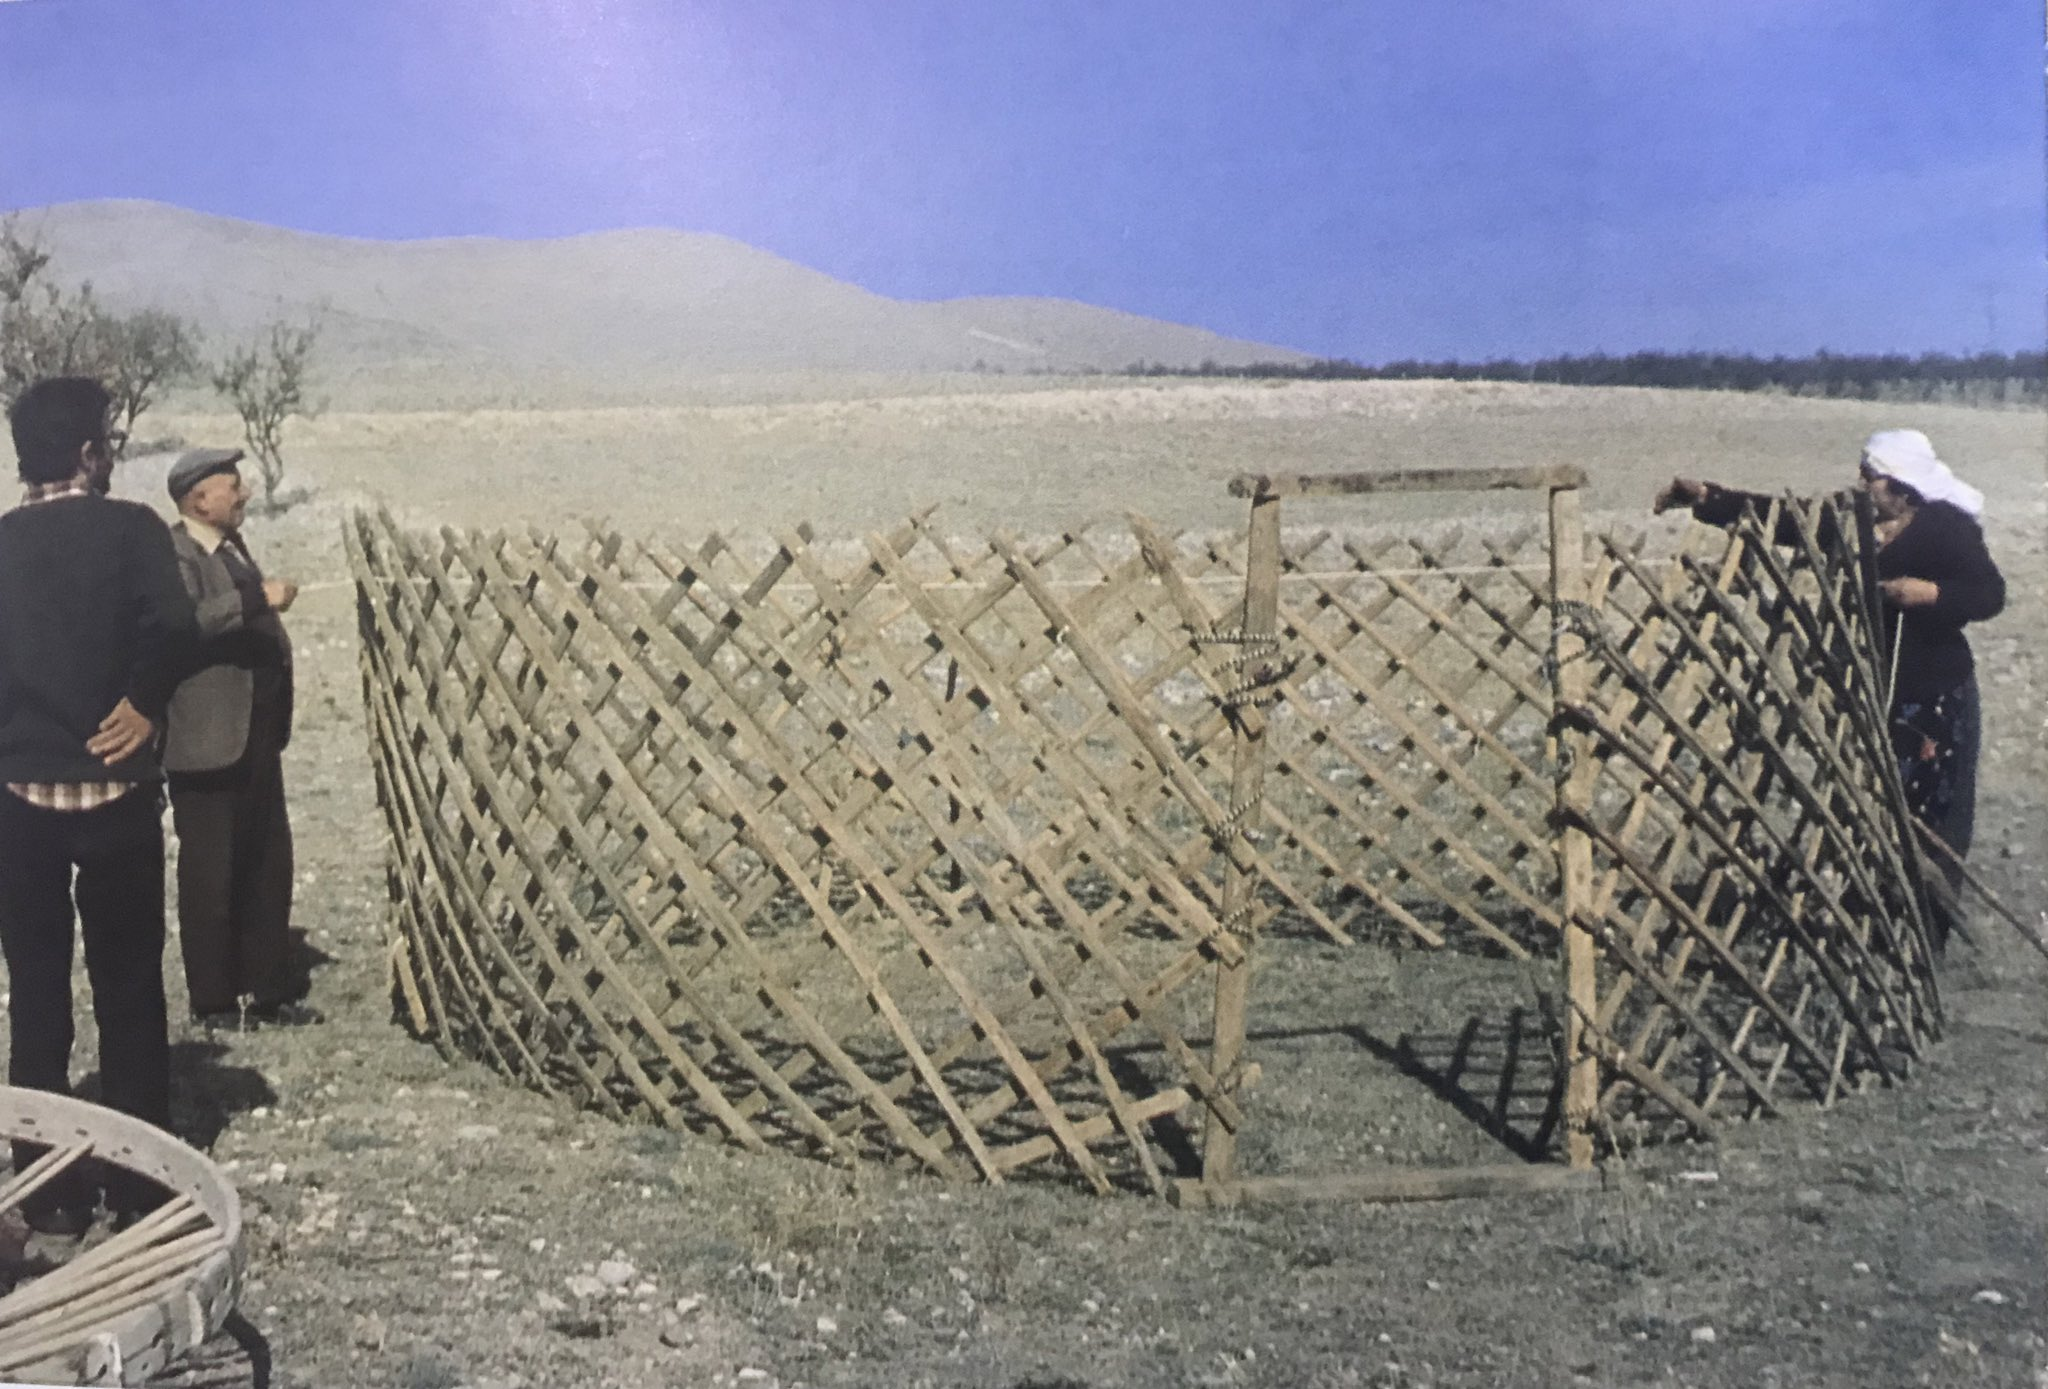 Derim, united to form the wall of the Anatolian Turkmen Tent, Bayat Tribe, Emirdag pasture, Afyon, West-Central Turkey, 1980s